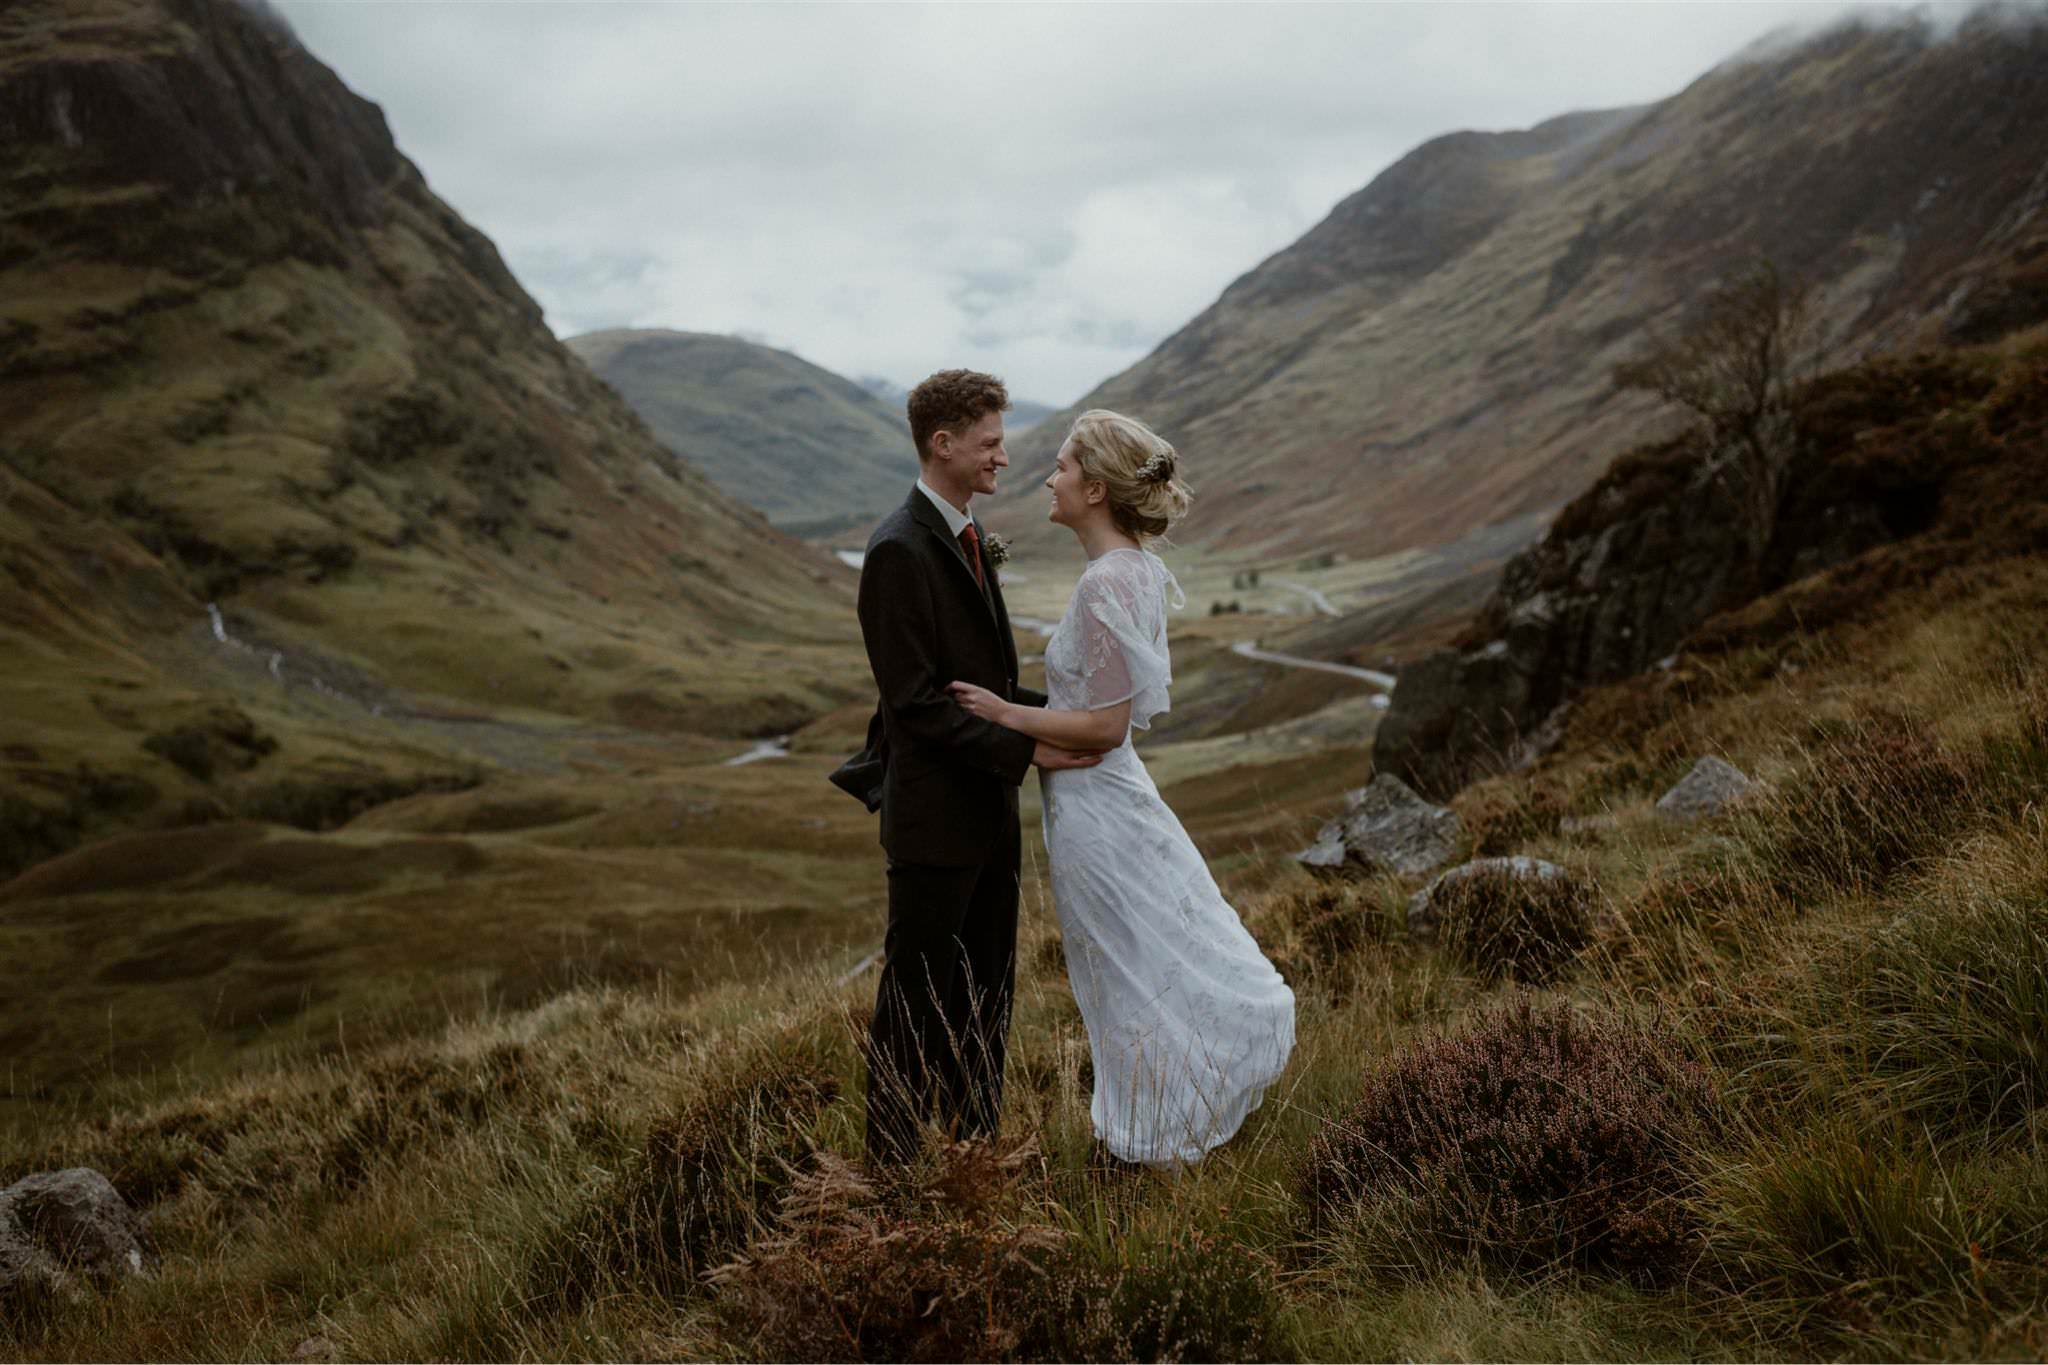 Bride and groom embrace after their Glencoe elopement wedding in Scotland